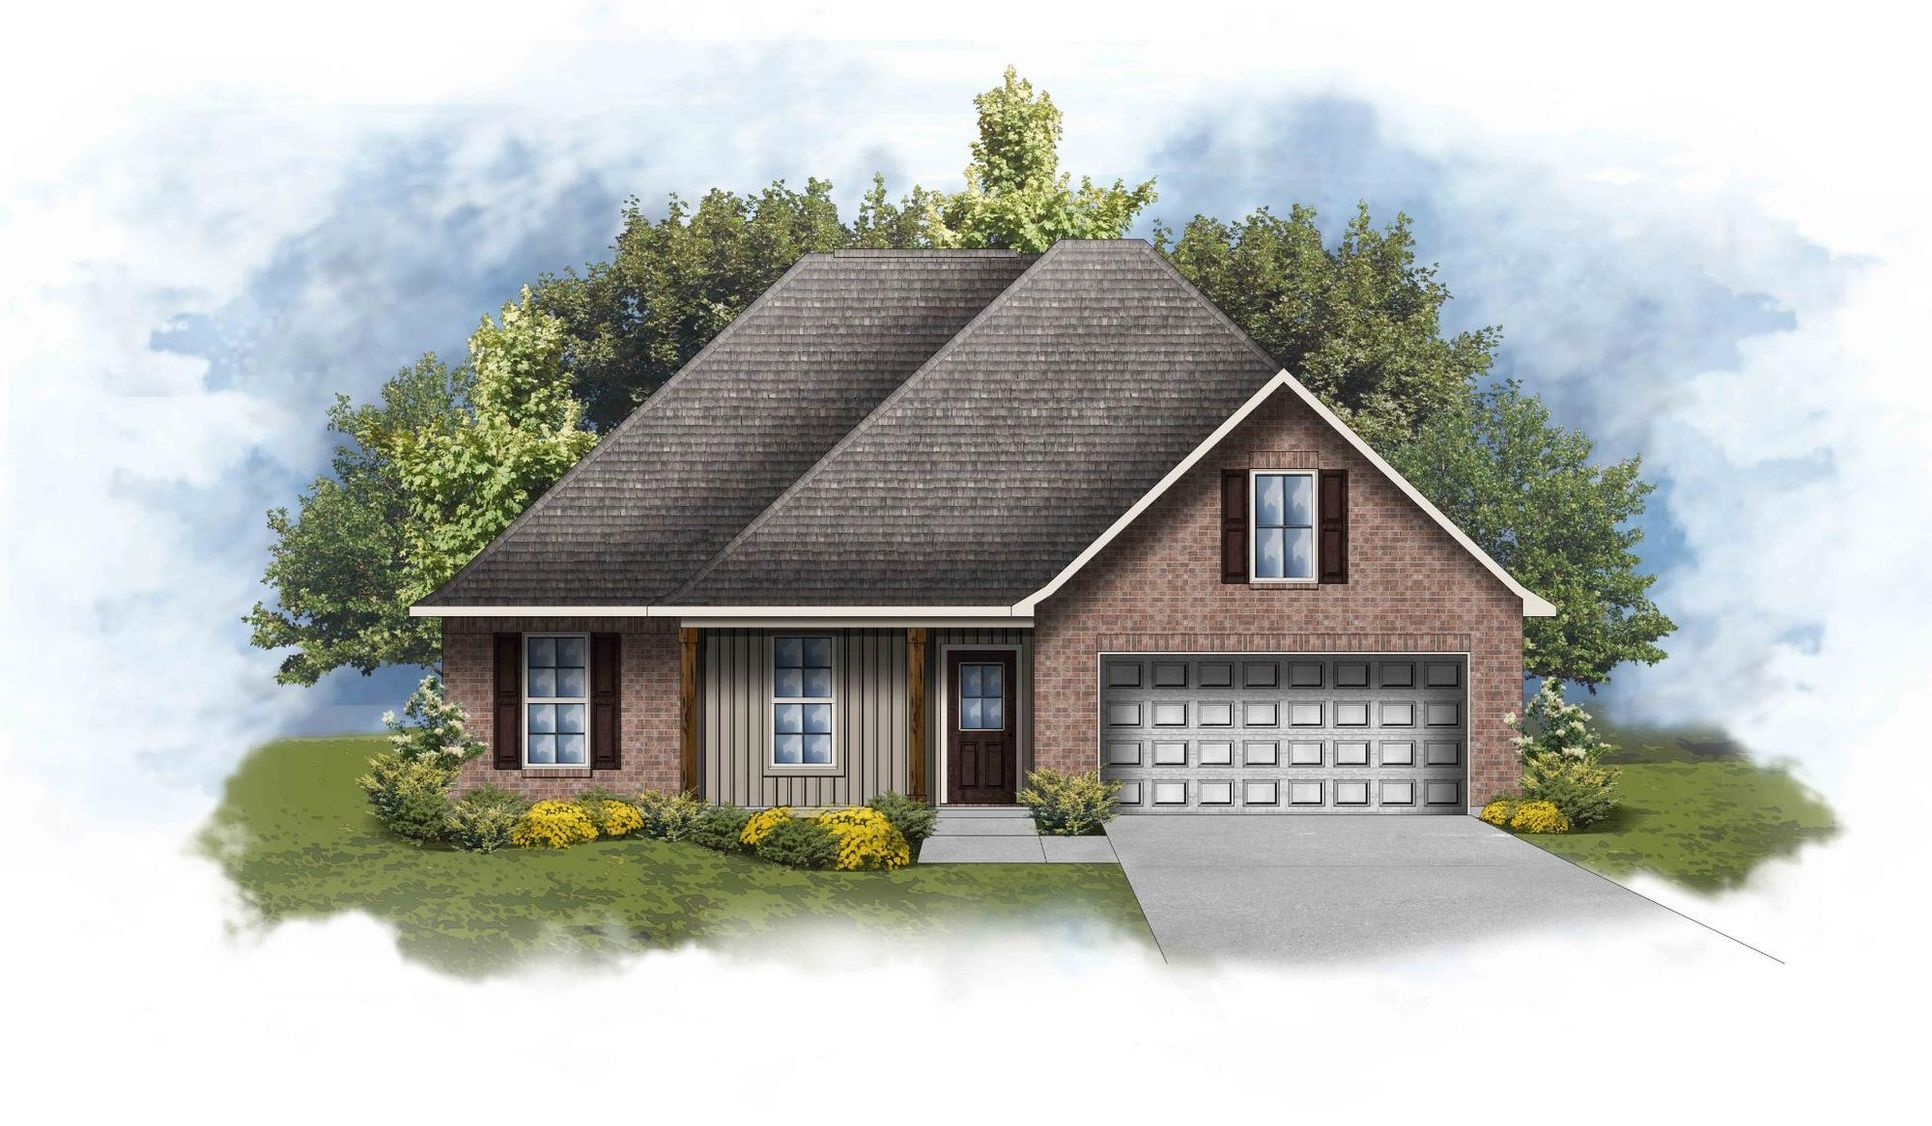 new homes in milton, FL in cherokee road by DSLD Homes:Ravenswood IV G - Floor Plan - DSLD Homes